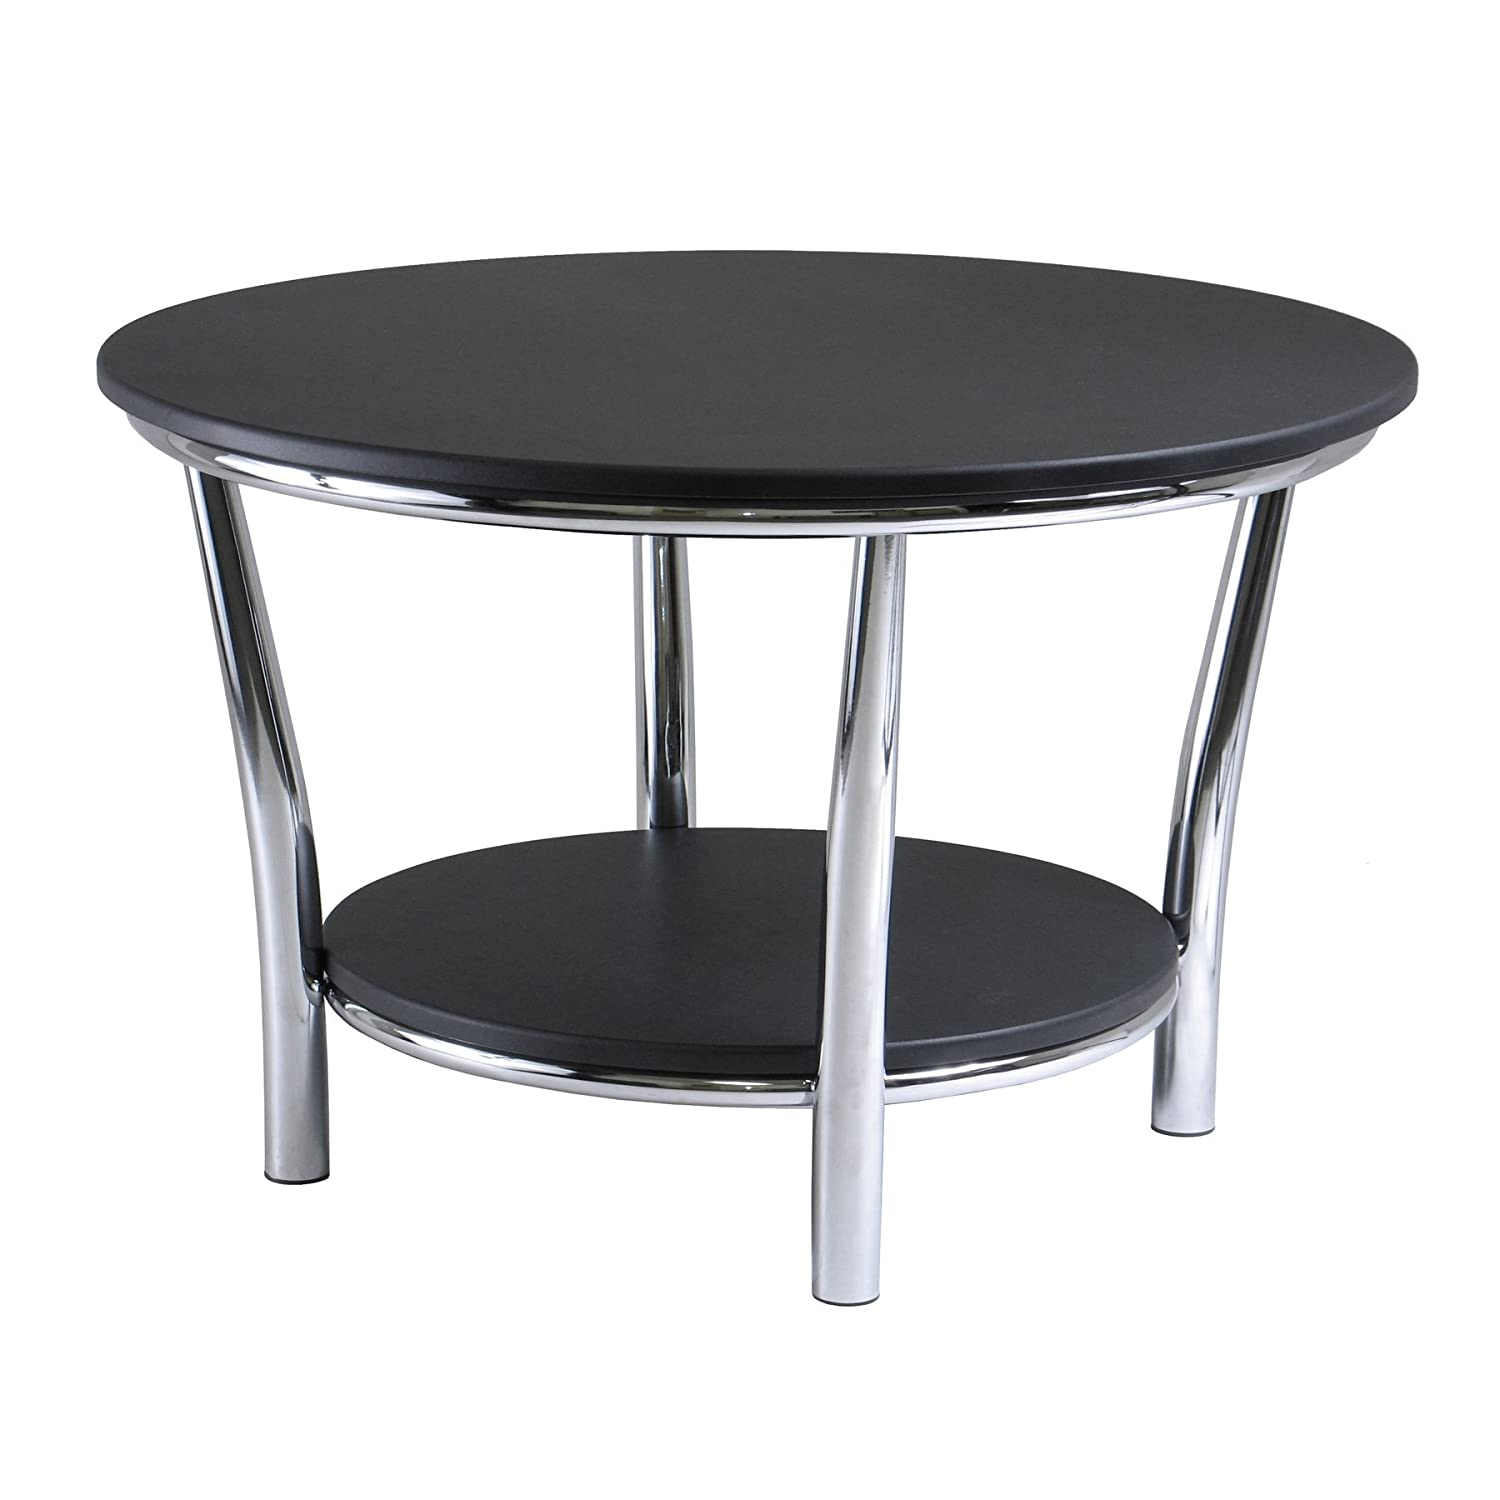 black round table. Amazon.com: Winsome Wood Maya Round Coffee Table, Black Top, Metal Legs: Kitchen \u0026 Dining Table N